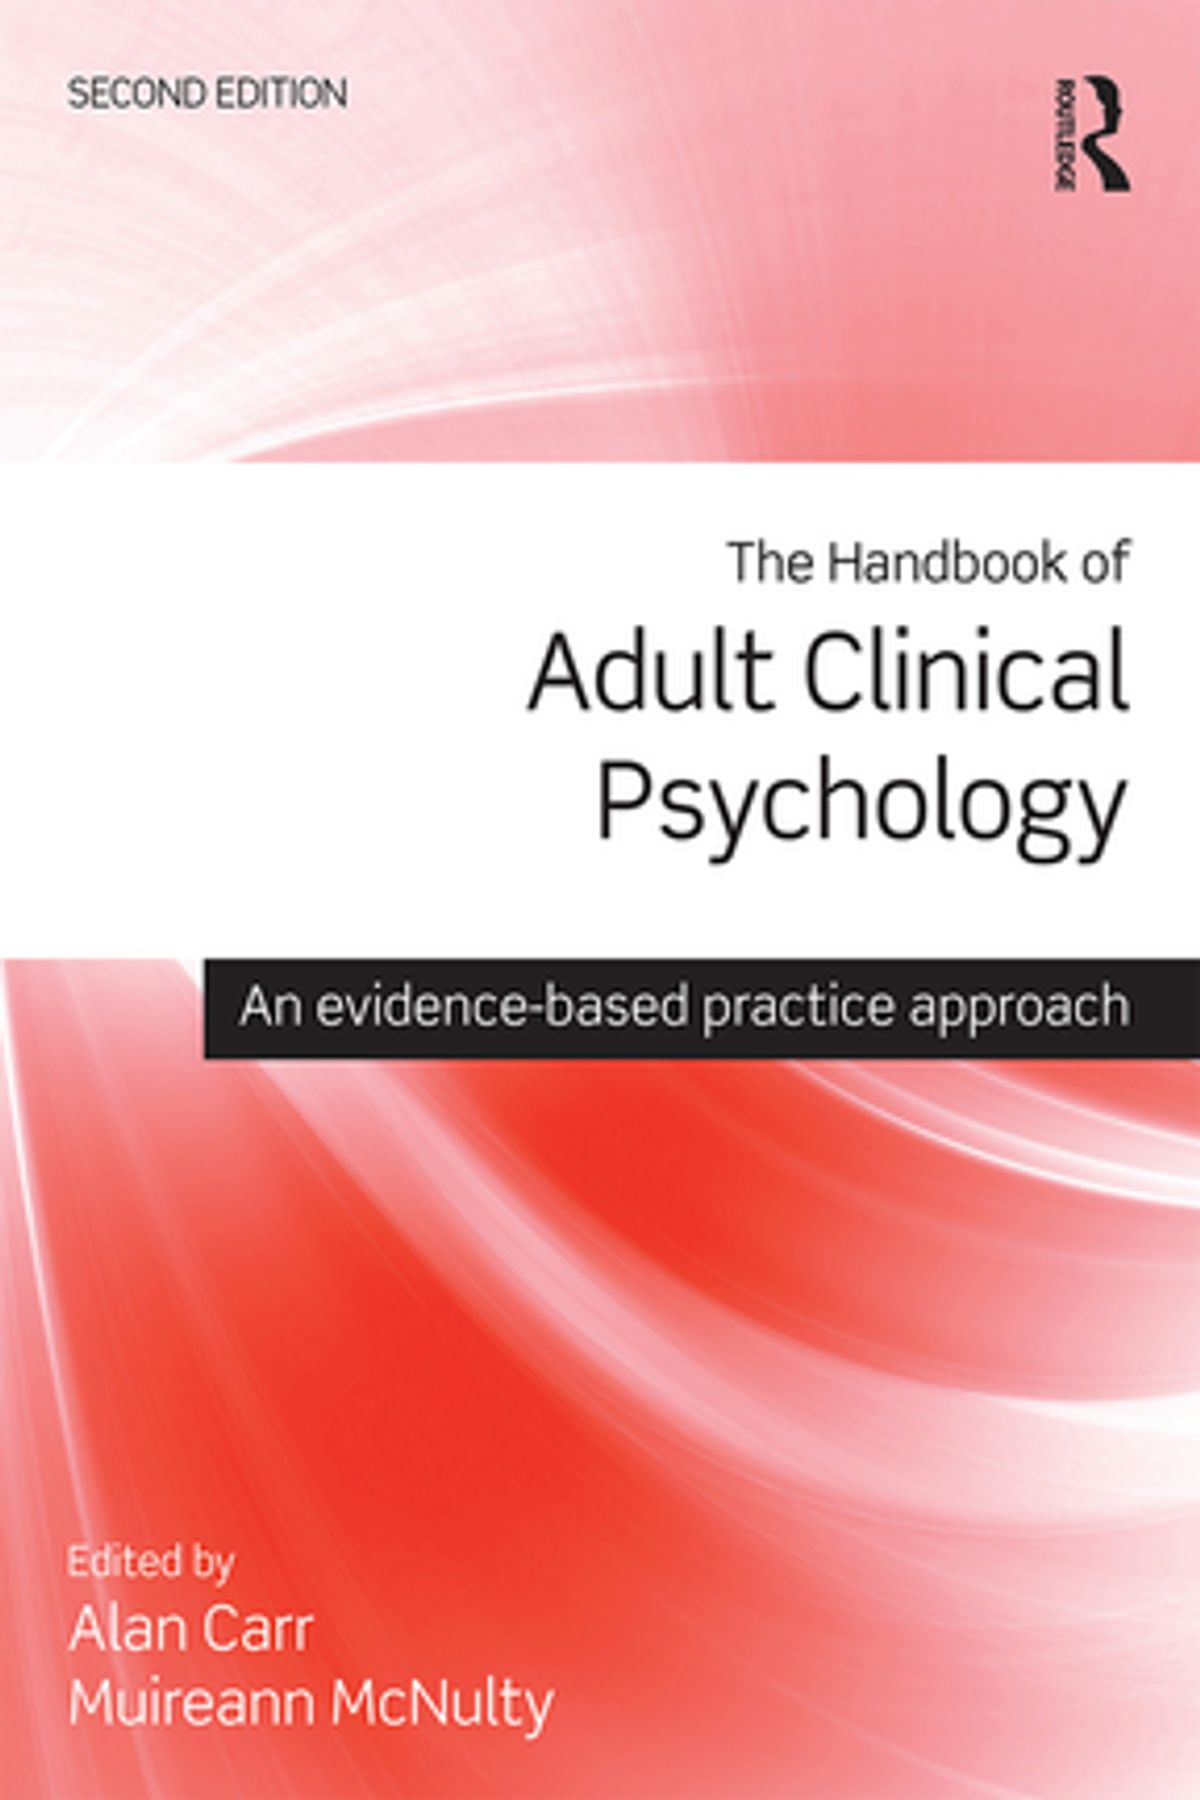 The Handbook of Adult Clinical Psychology by Alan Carr, Muireann McNulty, ISBN: 9781317576136